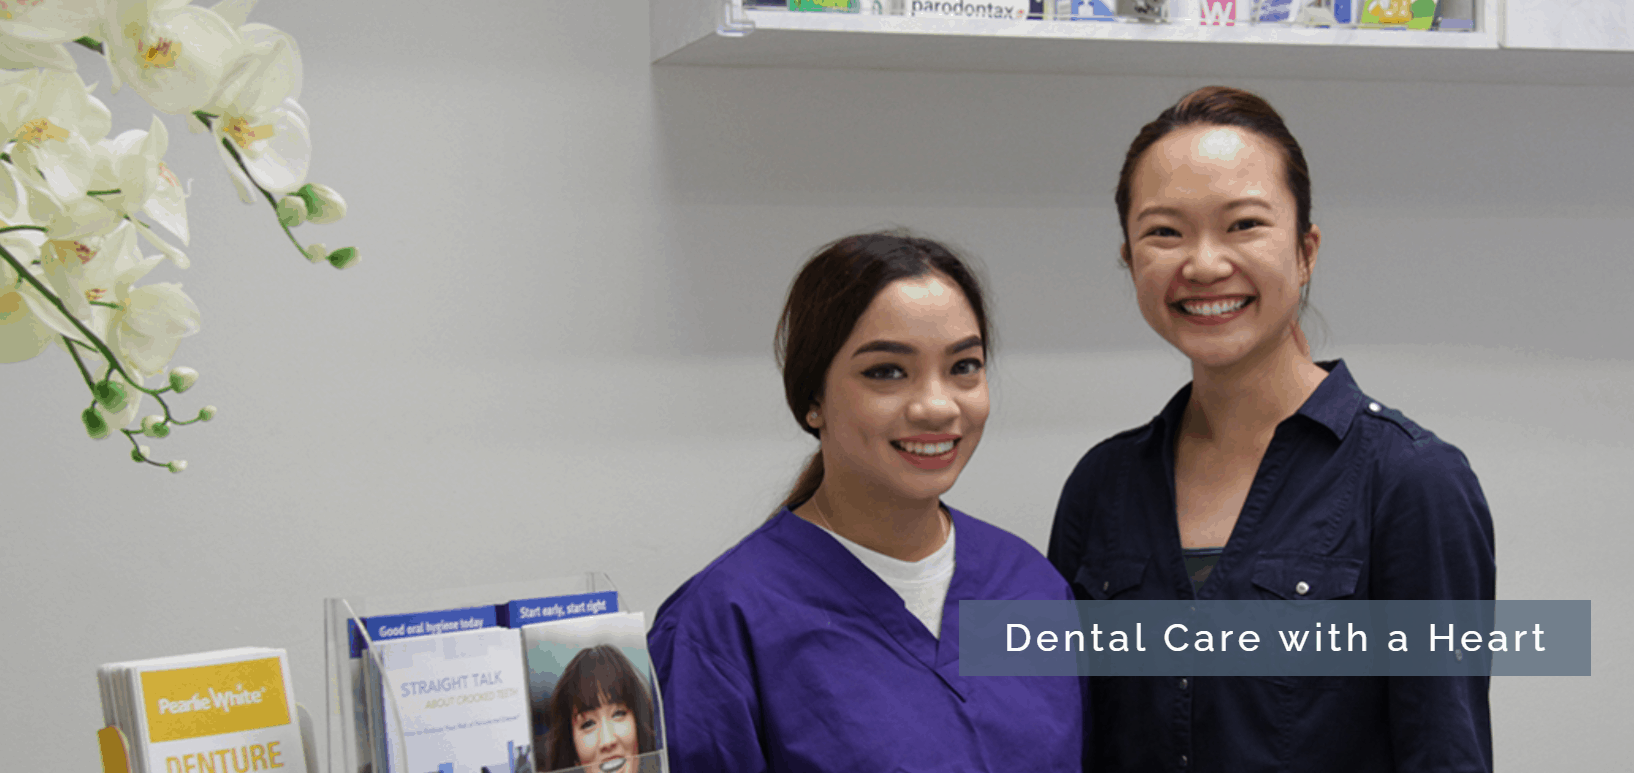 Advanced Dental Group polyclinic dental, How much does tooth extraction cost in Singapore?, What helps unbearable tooth pain?Is Polyclinic dental cheaper?,What is the best dental clinic in Singapore?,Where is the cheapest dental clinic in Singapore?